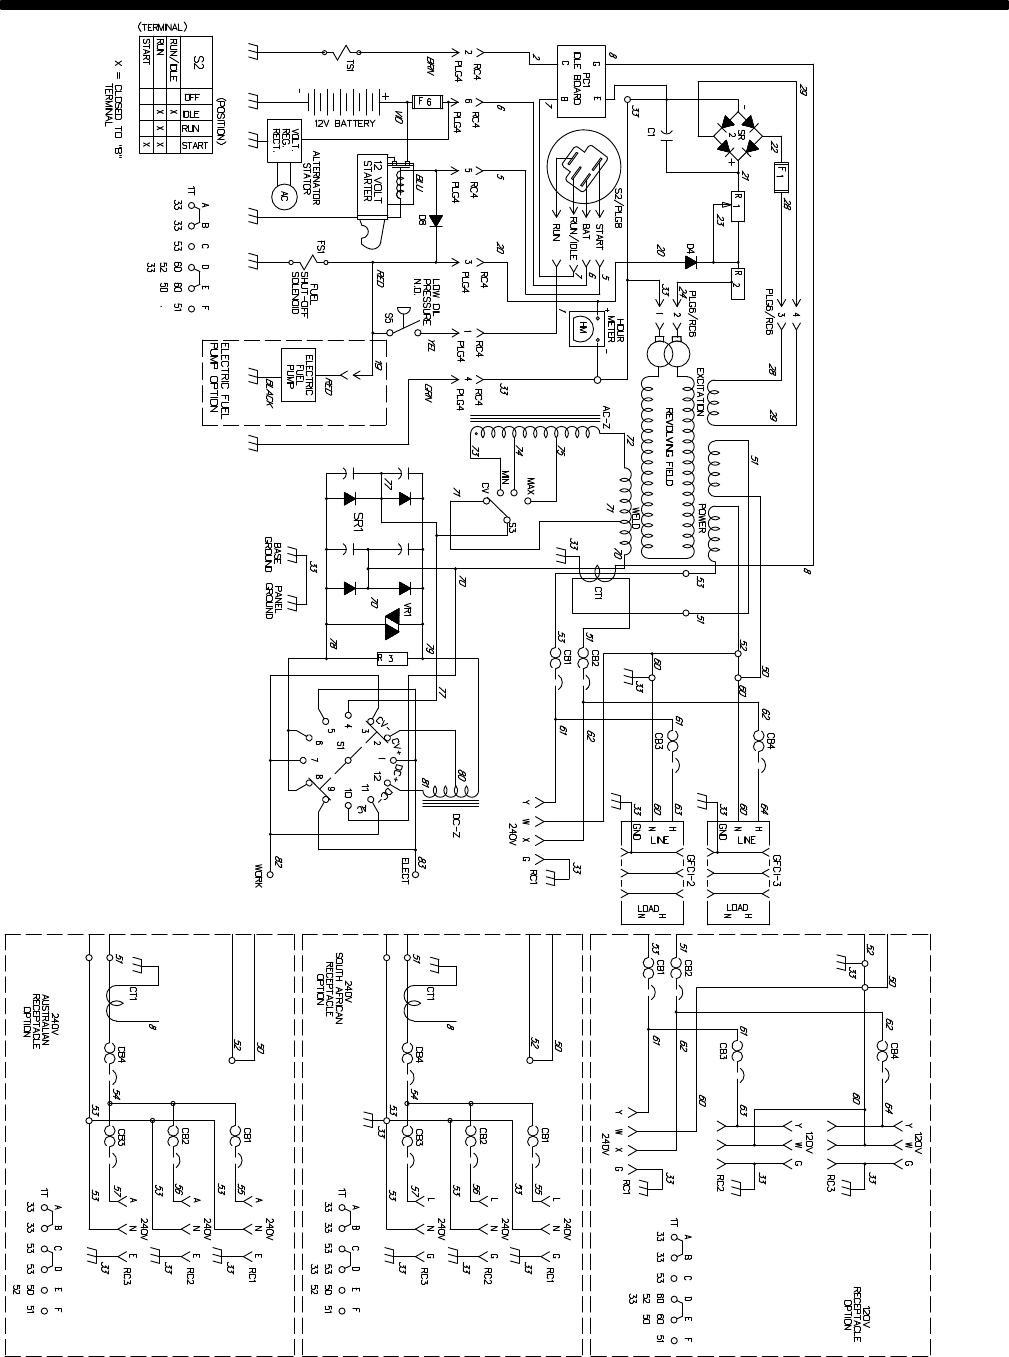 mig welder wiring diagram pdf with Bobcat Fuel Gauge Wiring Diagrams on Bobcat Fuel Gauge Wiring Diagrams as well 91 94 240sx Vaccuum Diagrams  ponent Locaters as well Wiring Diagram For Kubota Rtv 1100 further Spot Welding Parts Diagram together with Diagram For Welding.